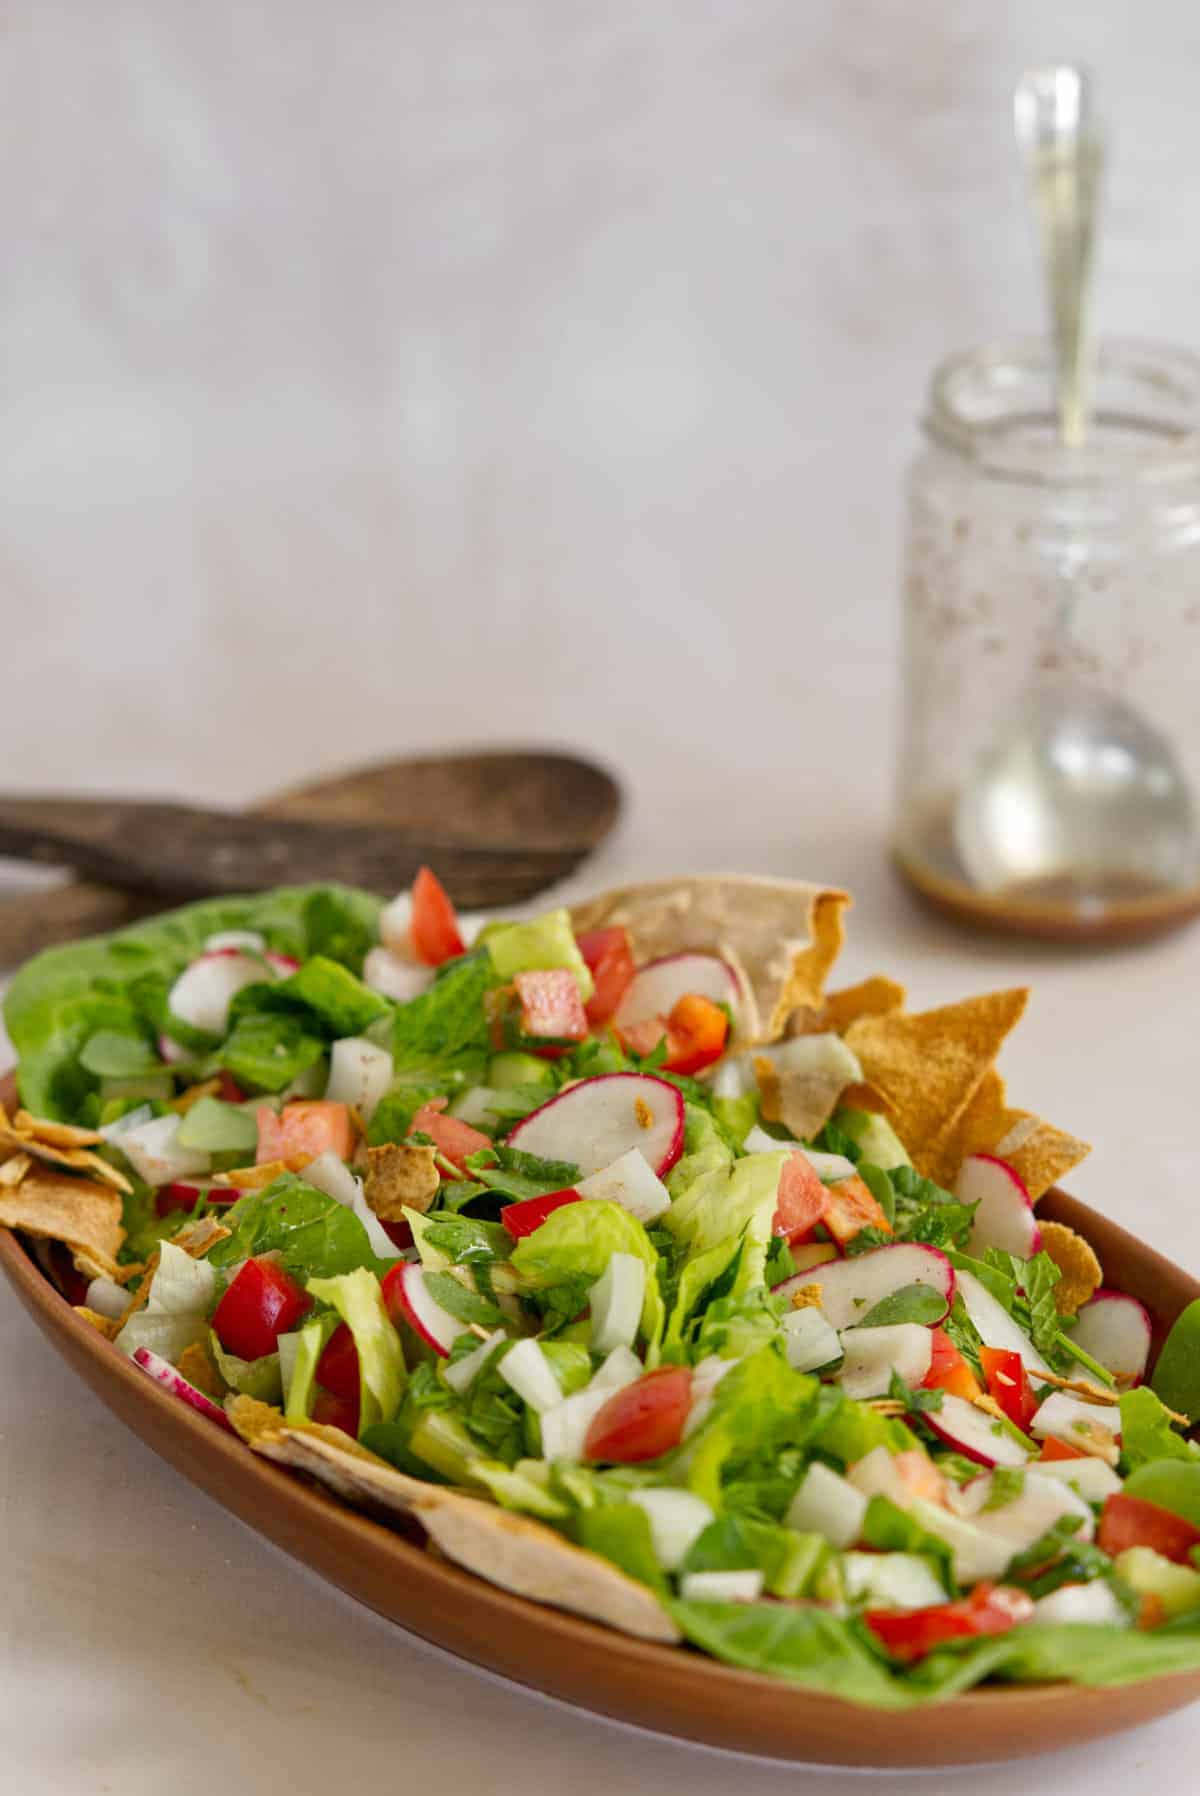 fattoush lebanese salad in a brown plate